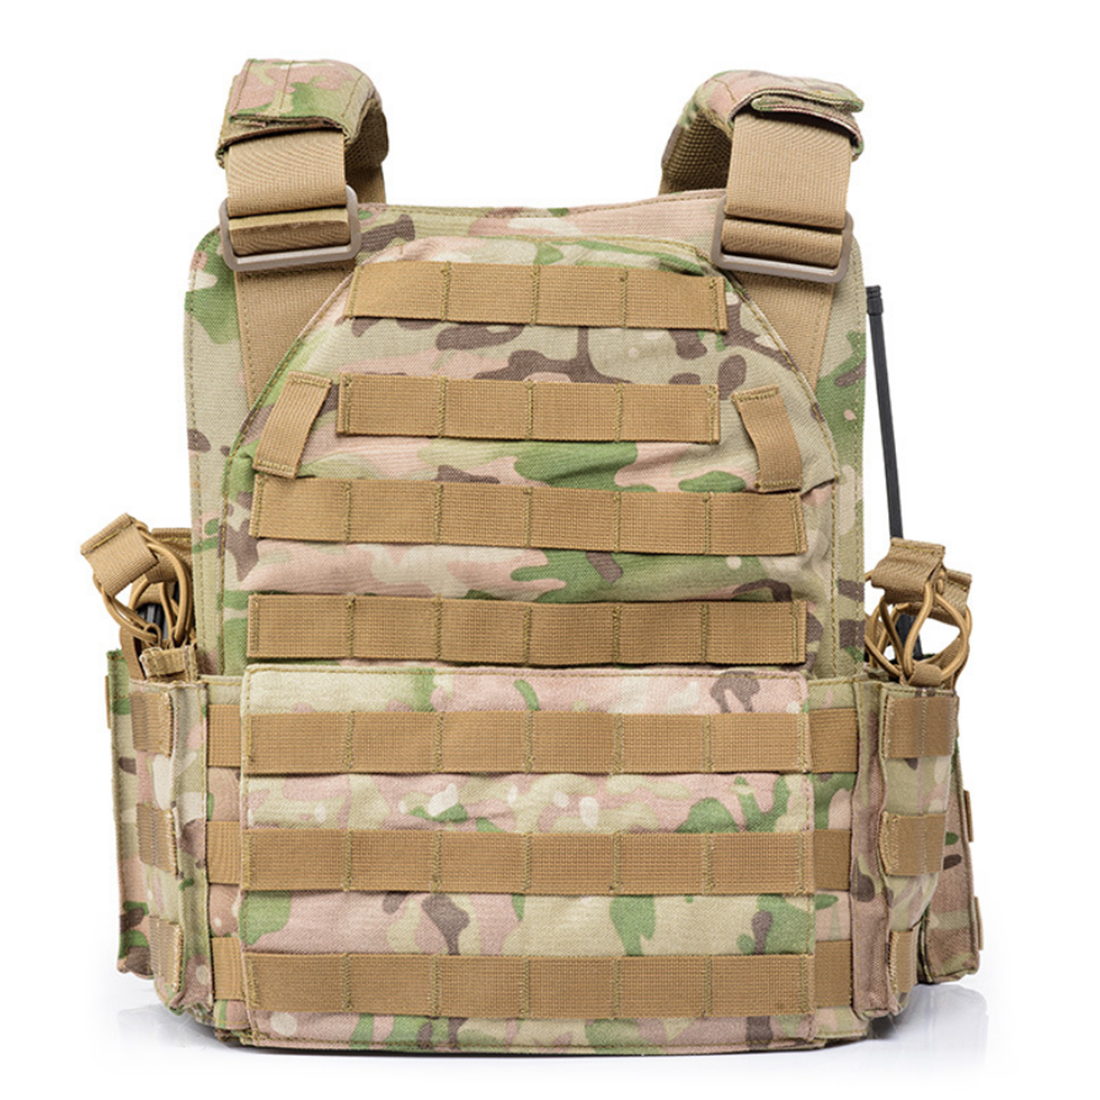 1000D Nylon Plate Carrier Tactical Vest Outdoor Hunting Protective Adjustable Vest for Men Airsoft Combat Accessories1000D Nylon Plate Carrier Tactical Vest Outdoor Hunting Protective Adjustable Vest for Men Airsoft Combat Accessories